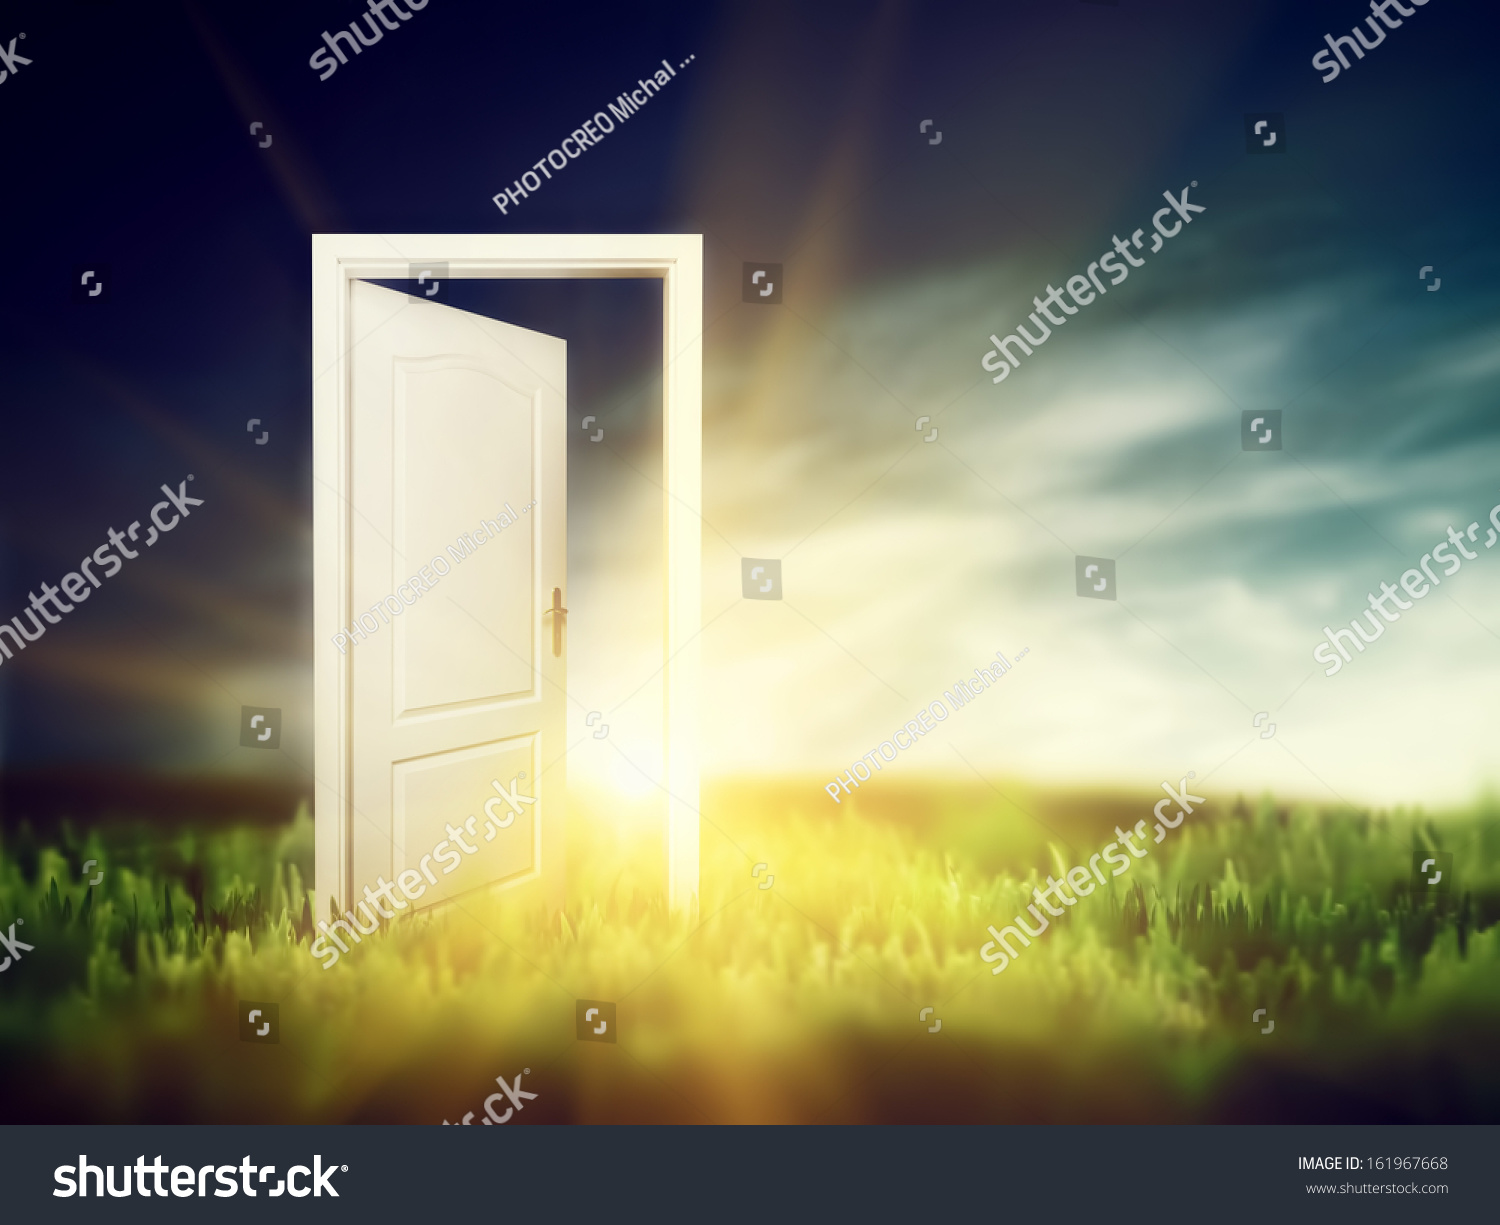 opening the door to new life Opening the door to a powerful new life by tama kieves this article is excerpted and adapted from the author's latest book thriving through uncertainty: moving beyond fear of the unknown and making change work for you (the penguin group.